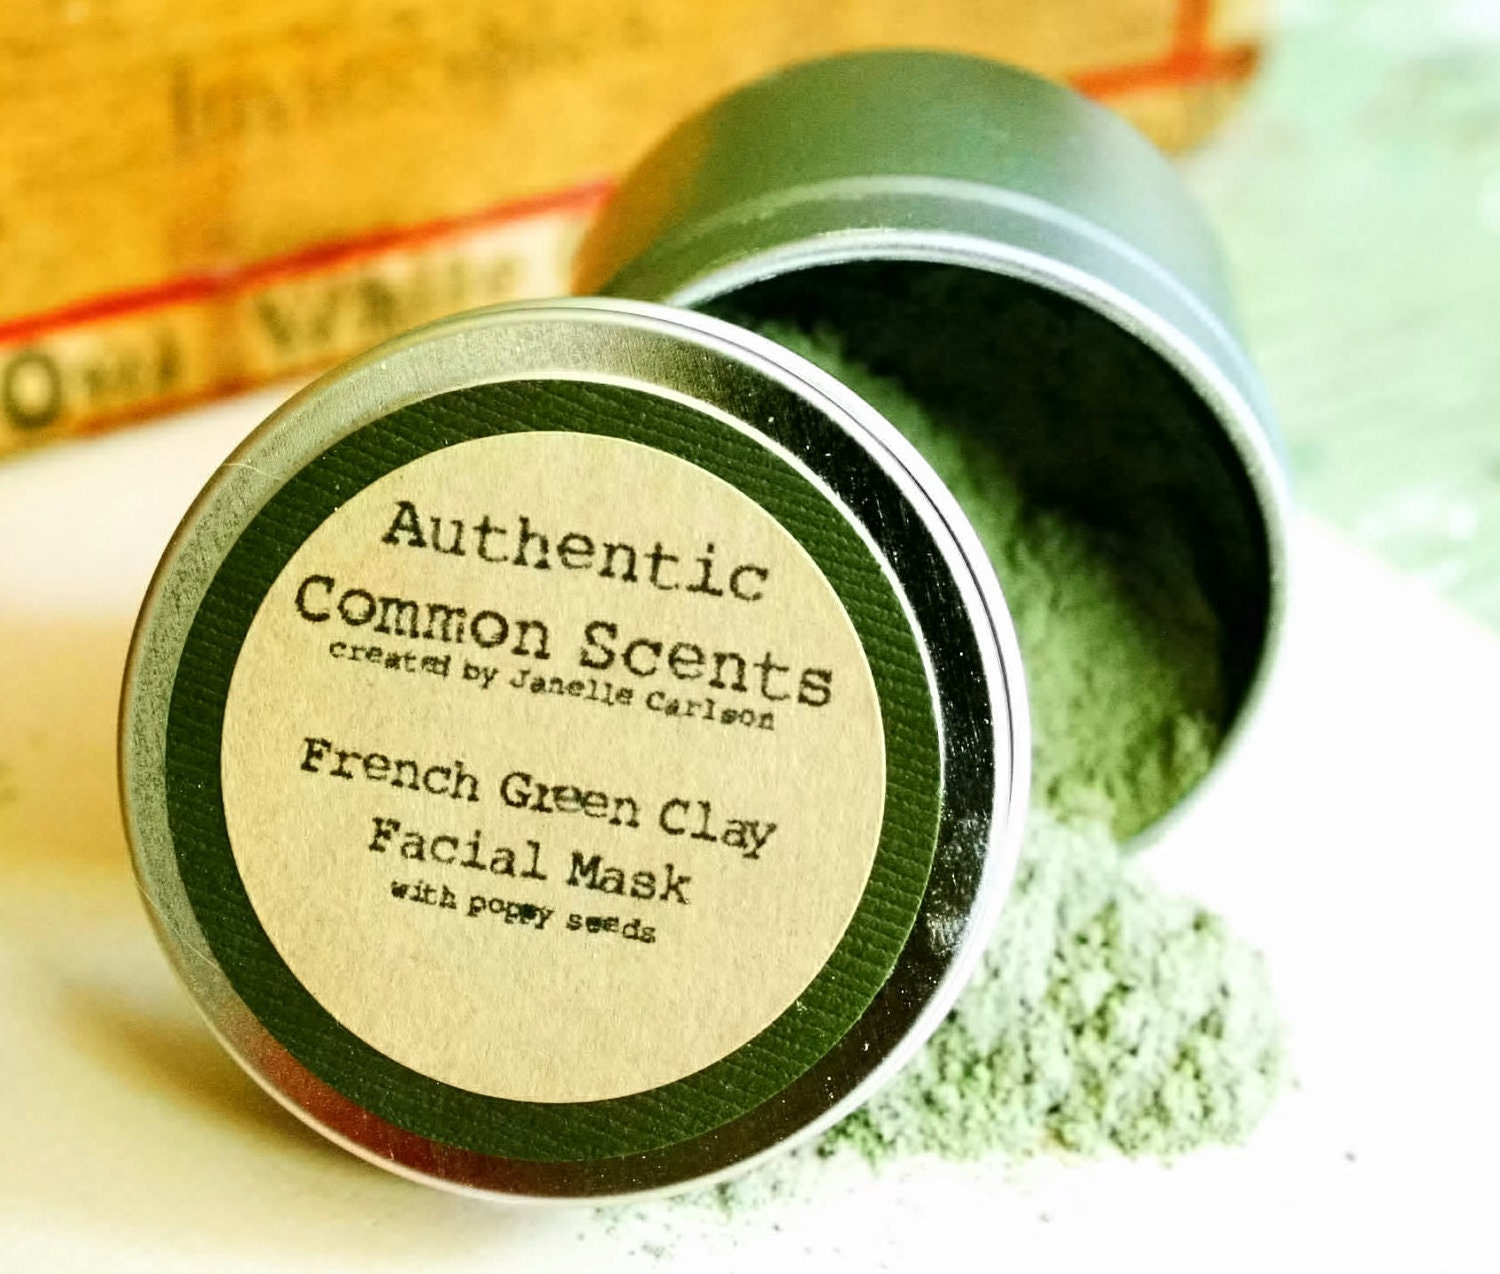 how to say green itea in french